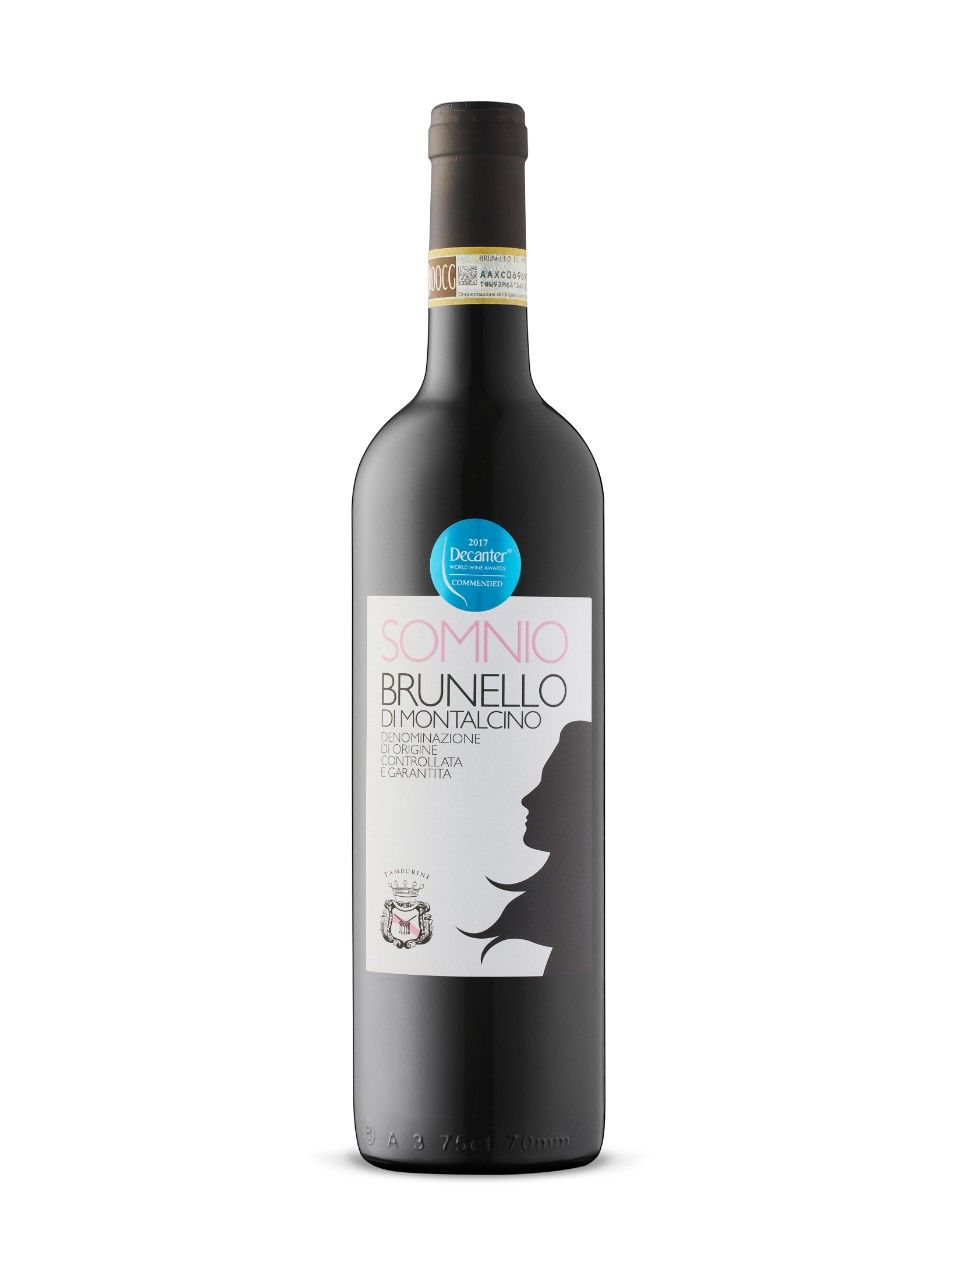 Image for Somnio Brunello Di Montalcino DOCG 2012 from LCBO